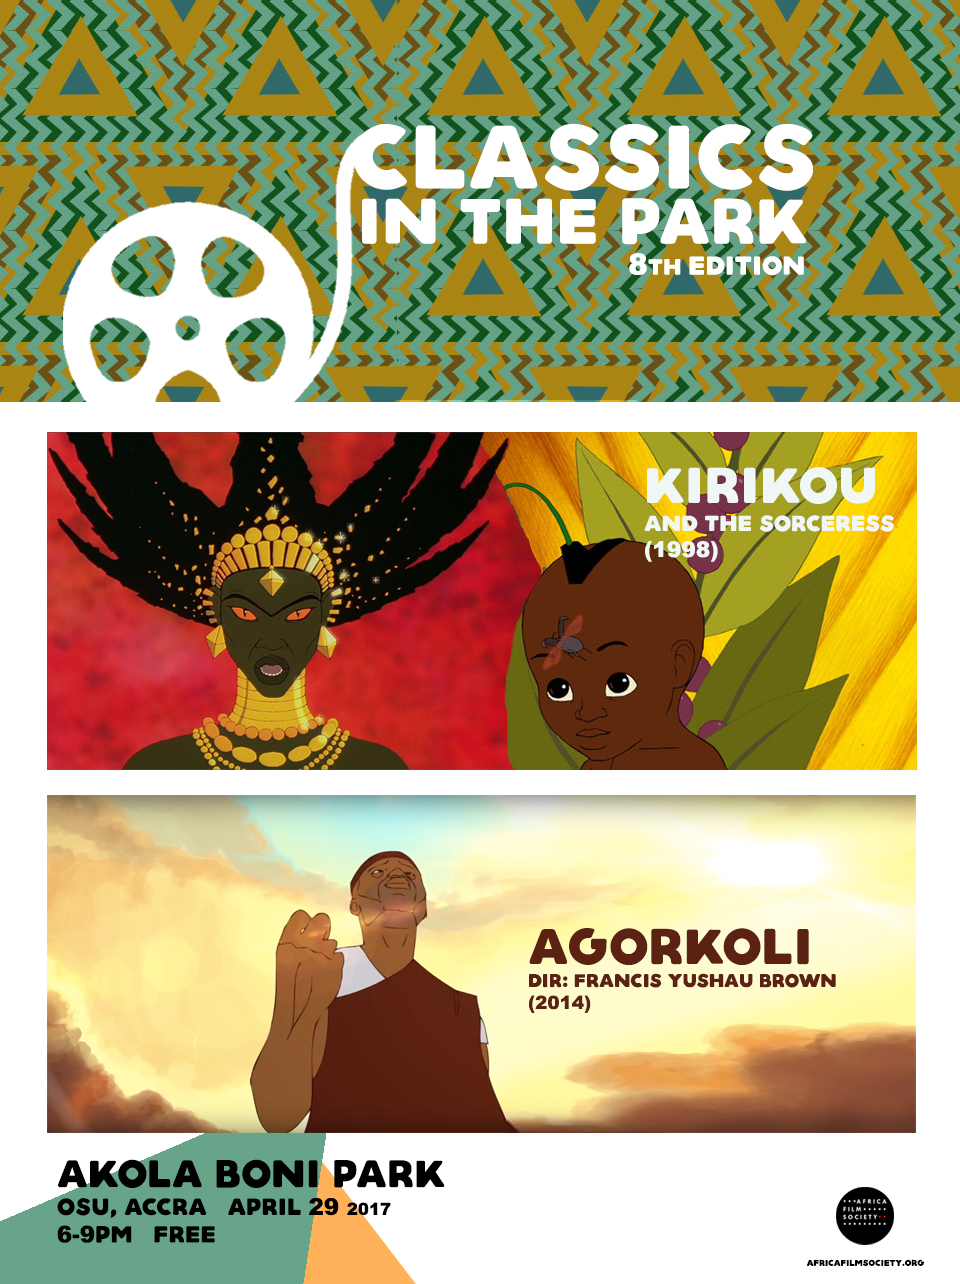 Africa Film Society's free outdoor film showcase 'Classics in the Park' will showcase African Animation for its Season Finale. Slated for April 29th, 6pm at Akola Boni Park in Osu, our 8th edition aims to reacquaint Ghanaian film audience with 1998 cult classic Kirikou and the Sorceress. We will open screening with Ghanaian animated short film Agorkoli (2014) by Francis Yushau Brown.   This will be our last screening for the Season. We will return in September for Season 2. We encourage our audience to bring a canned good on April 29th to be donated to South Labone Girls Vocational School which is opposite Akola Boni Park. We believe in making a positive impact in the communities we screen. Thanks in Advance. DIRECTIONS to Akola Boni Park can be found  HERE